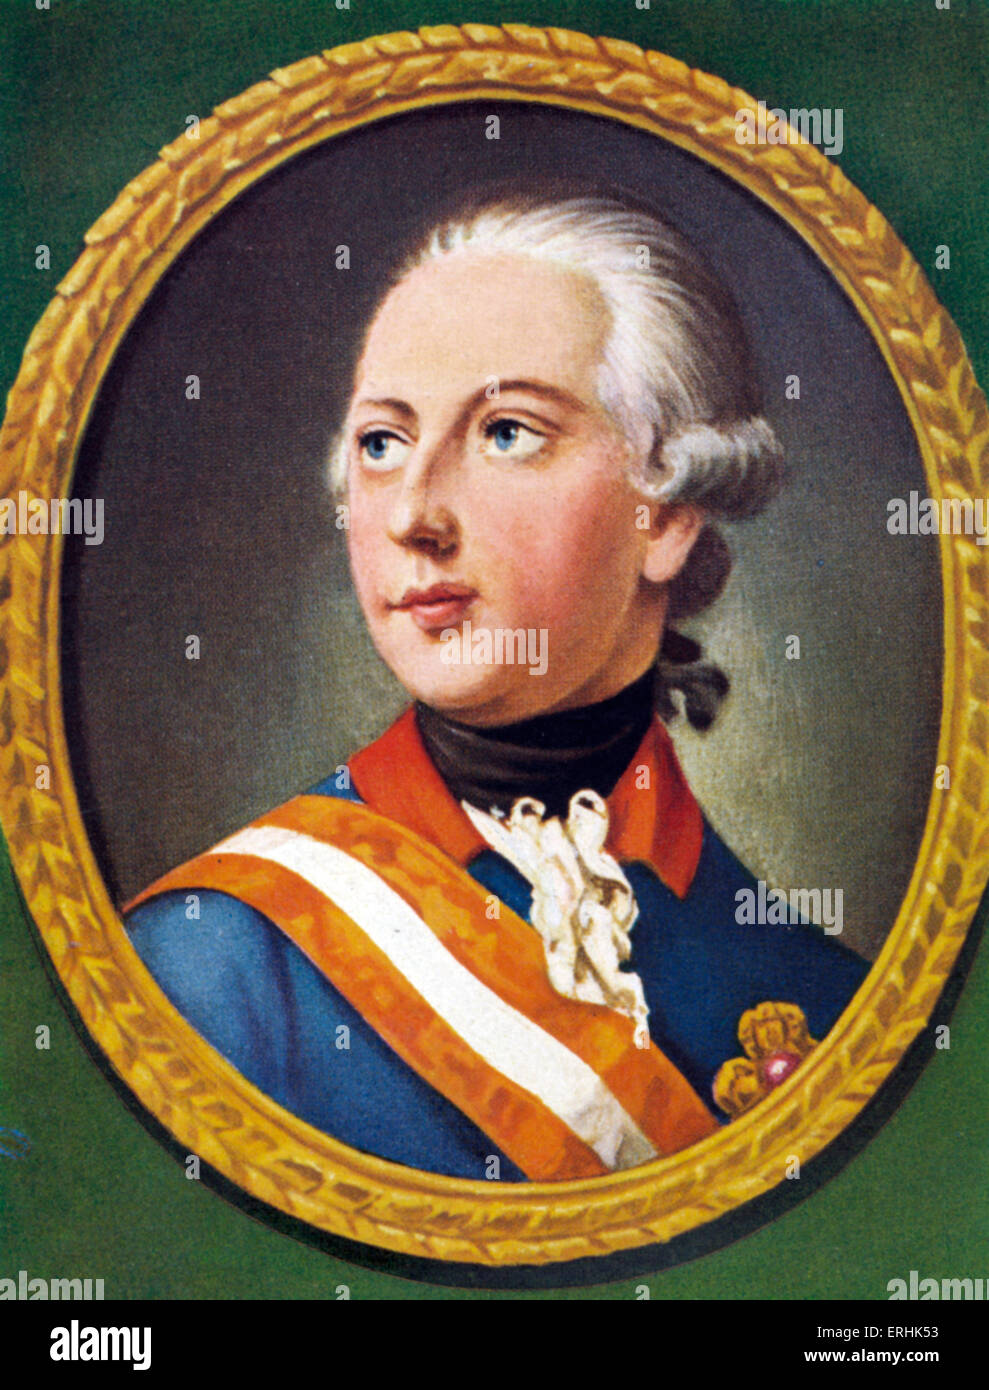 Joseph II. Portrait of the German Kaiser (Holy Roman Emperor). After a miniature by Heinrich Friedrich Fuger, 1776. Stock Photo